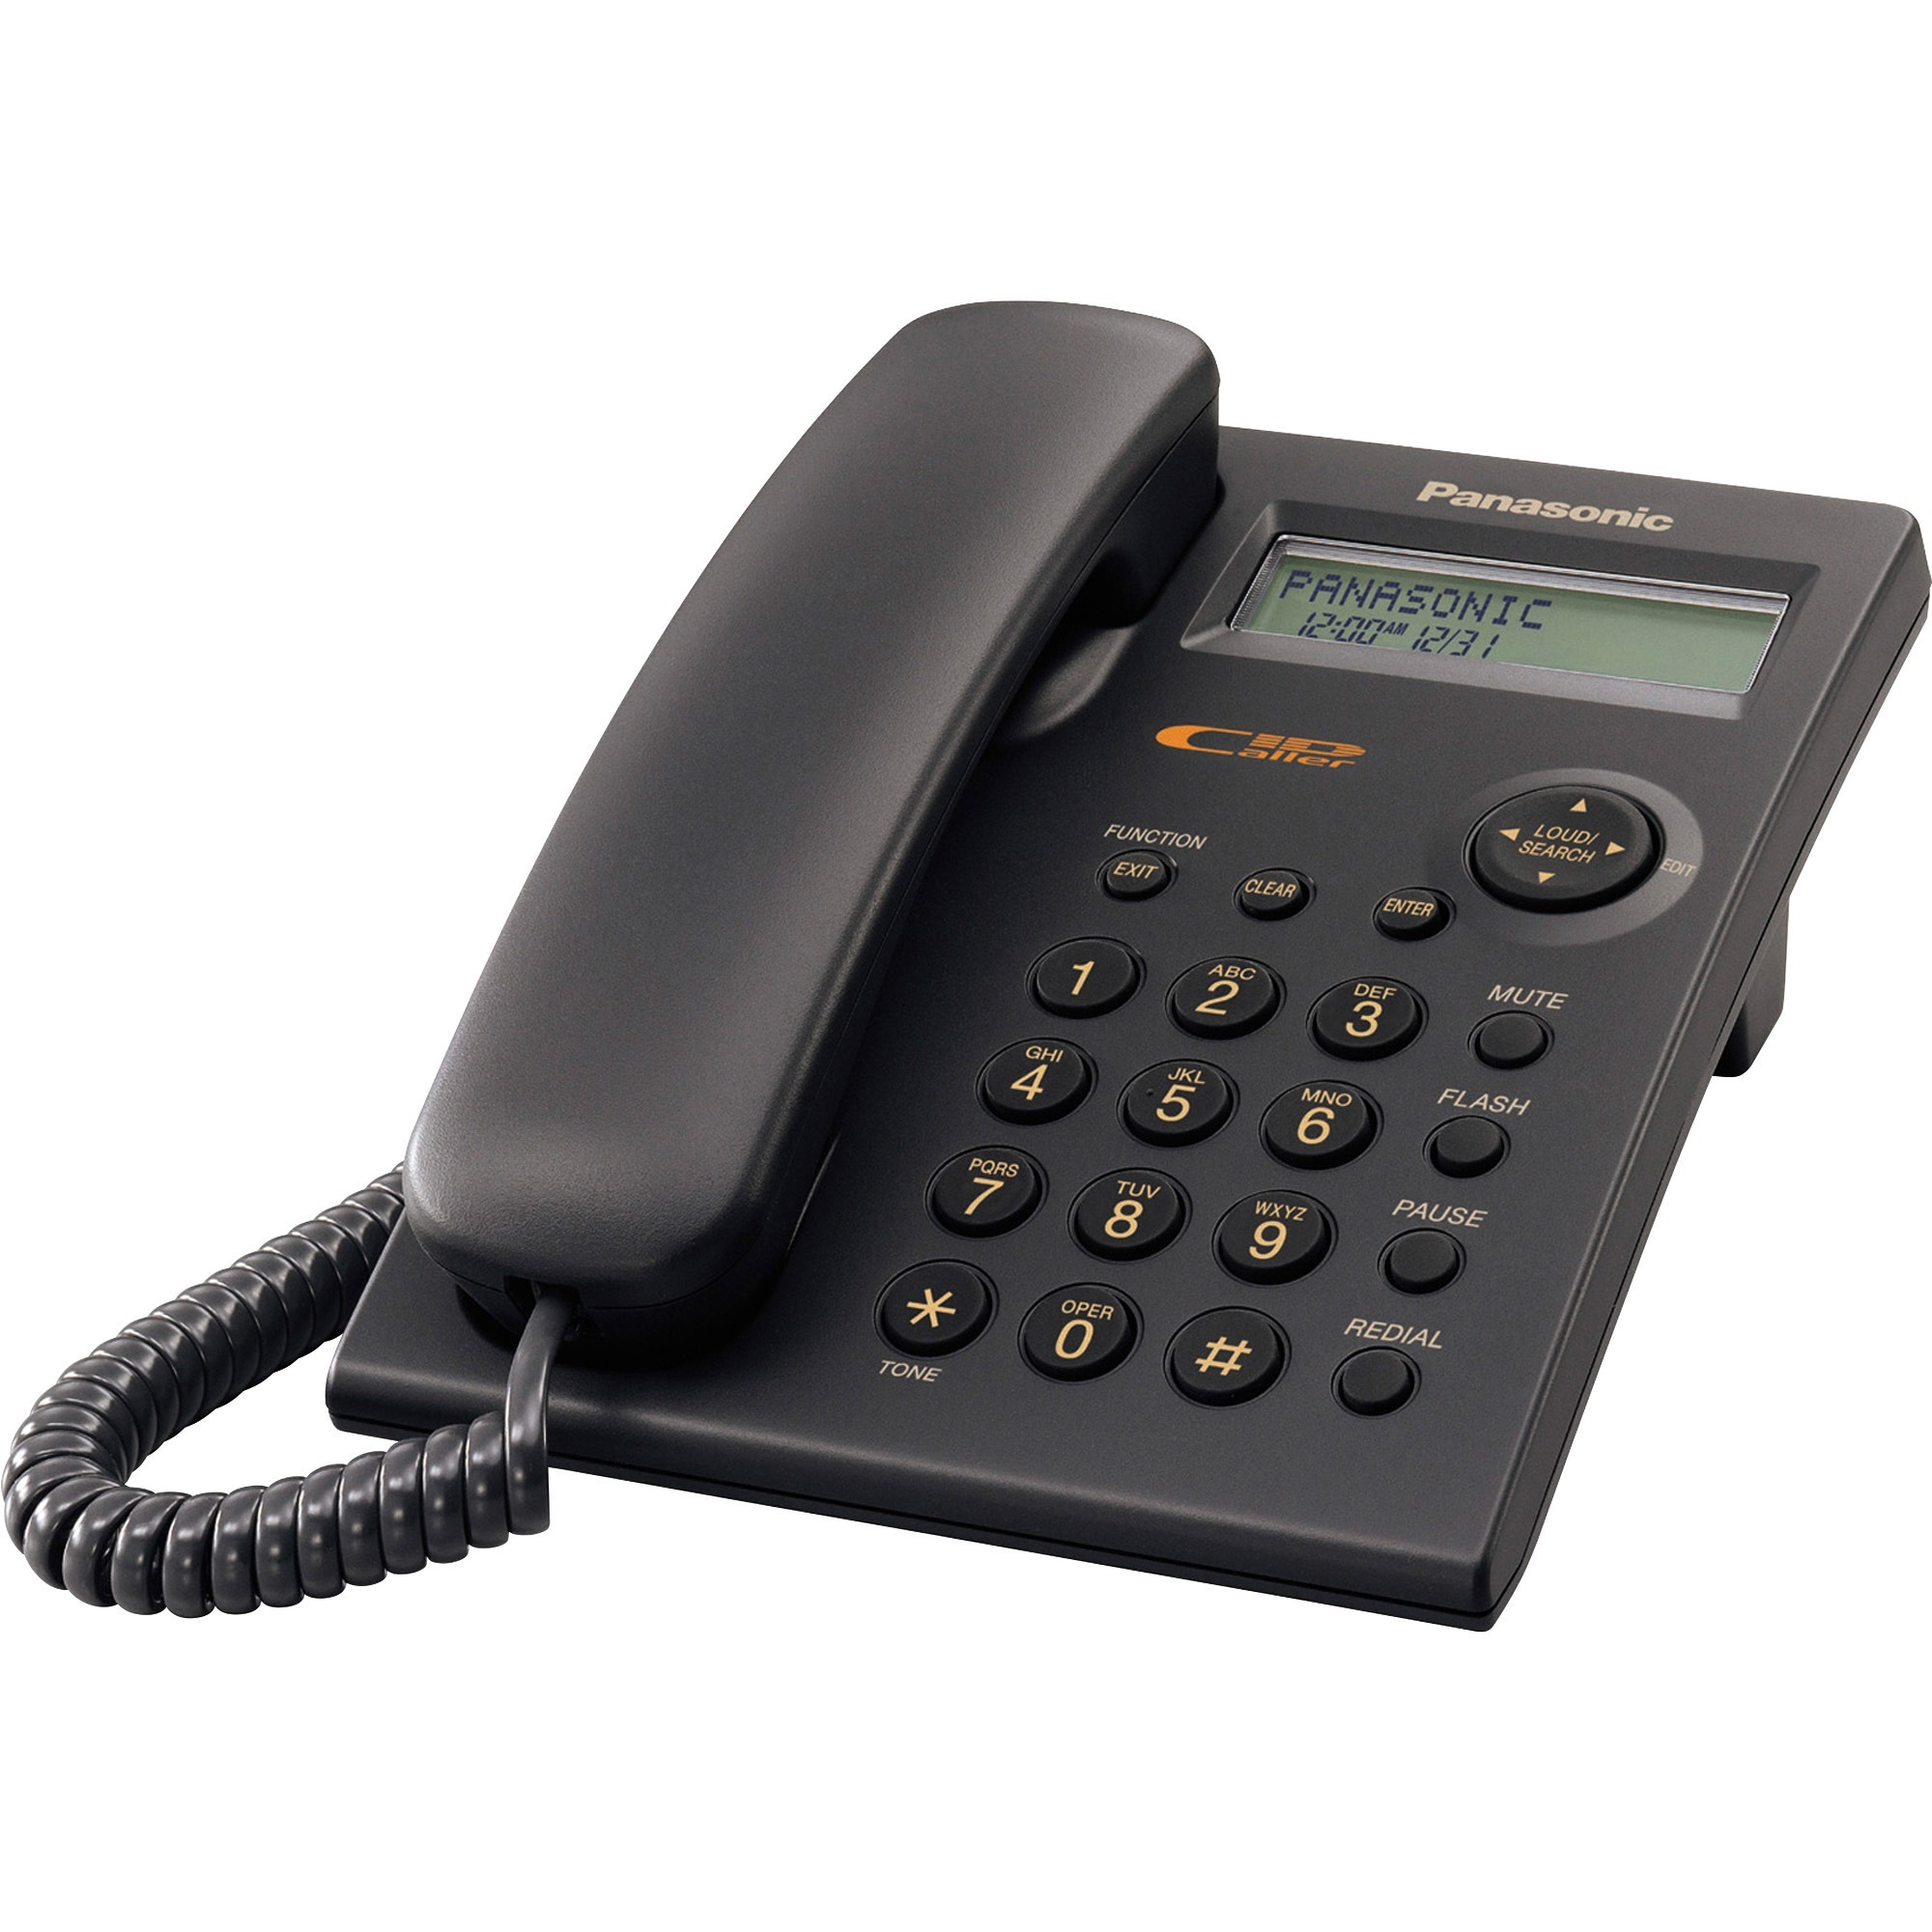 Panasonic Integrated Multifunction Phone